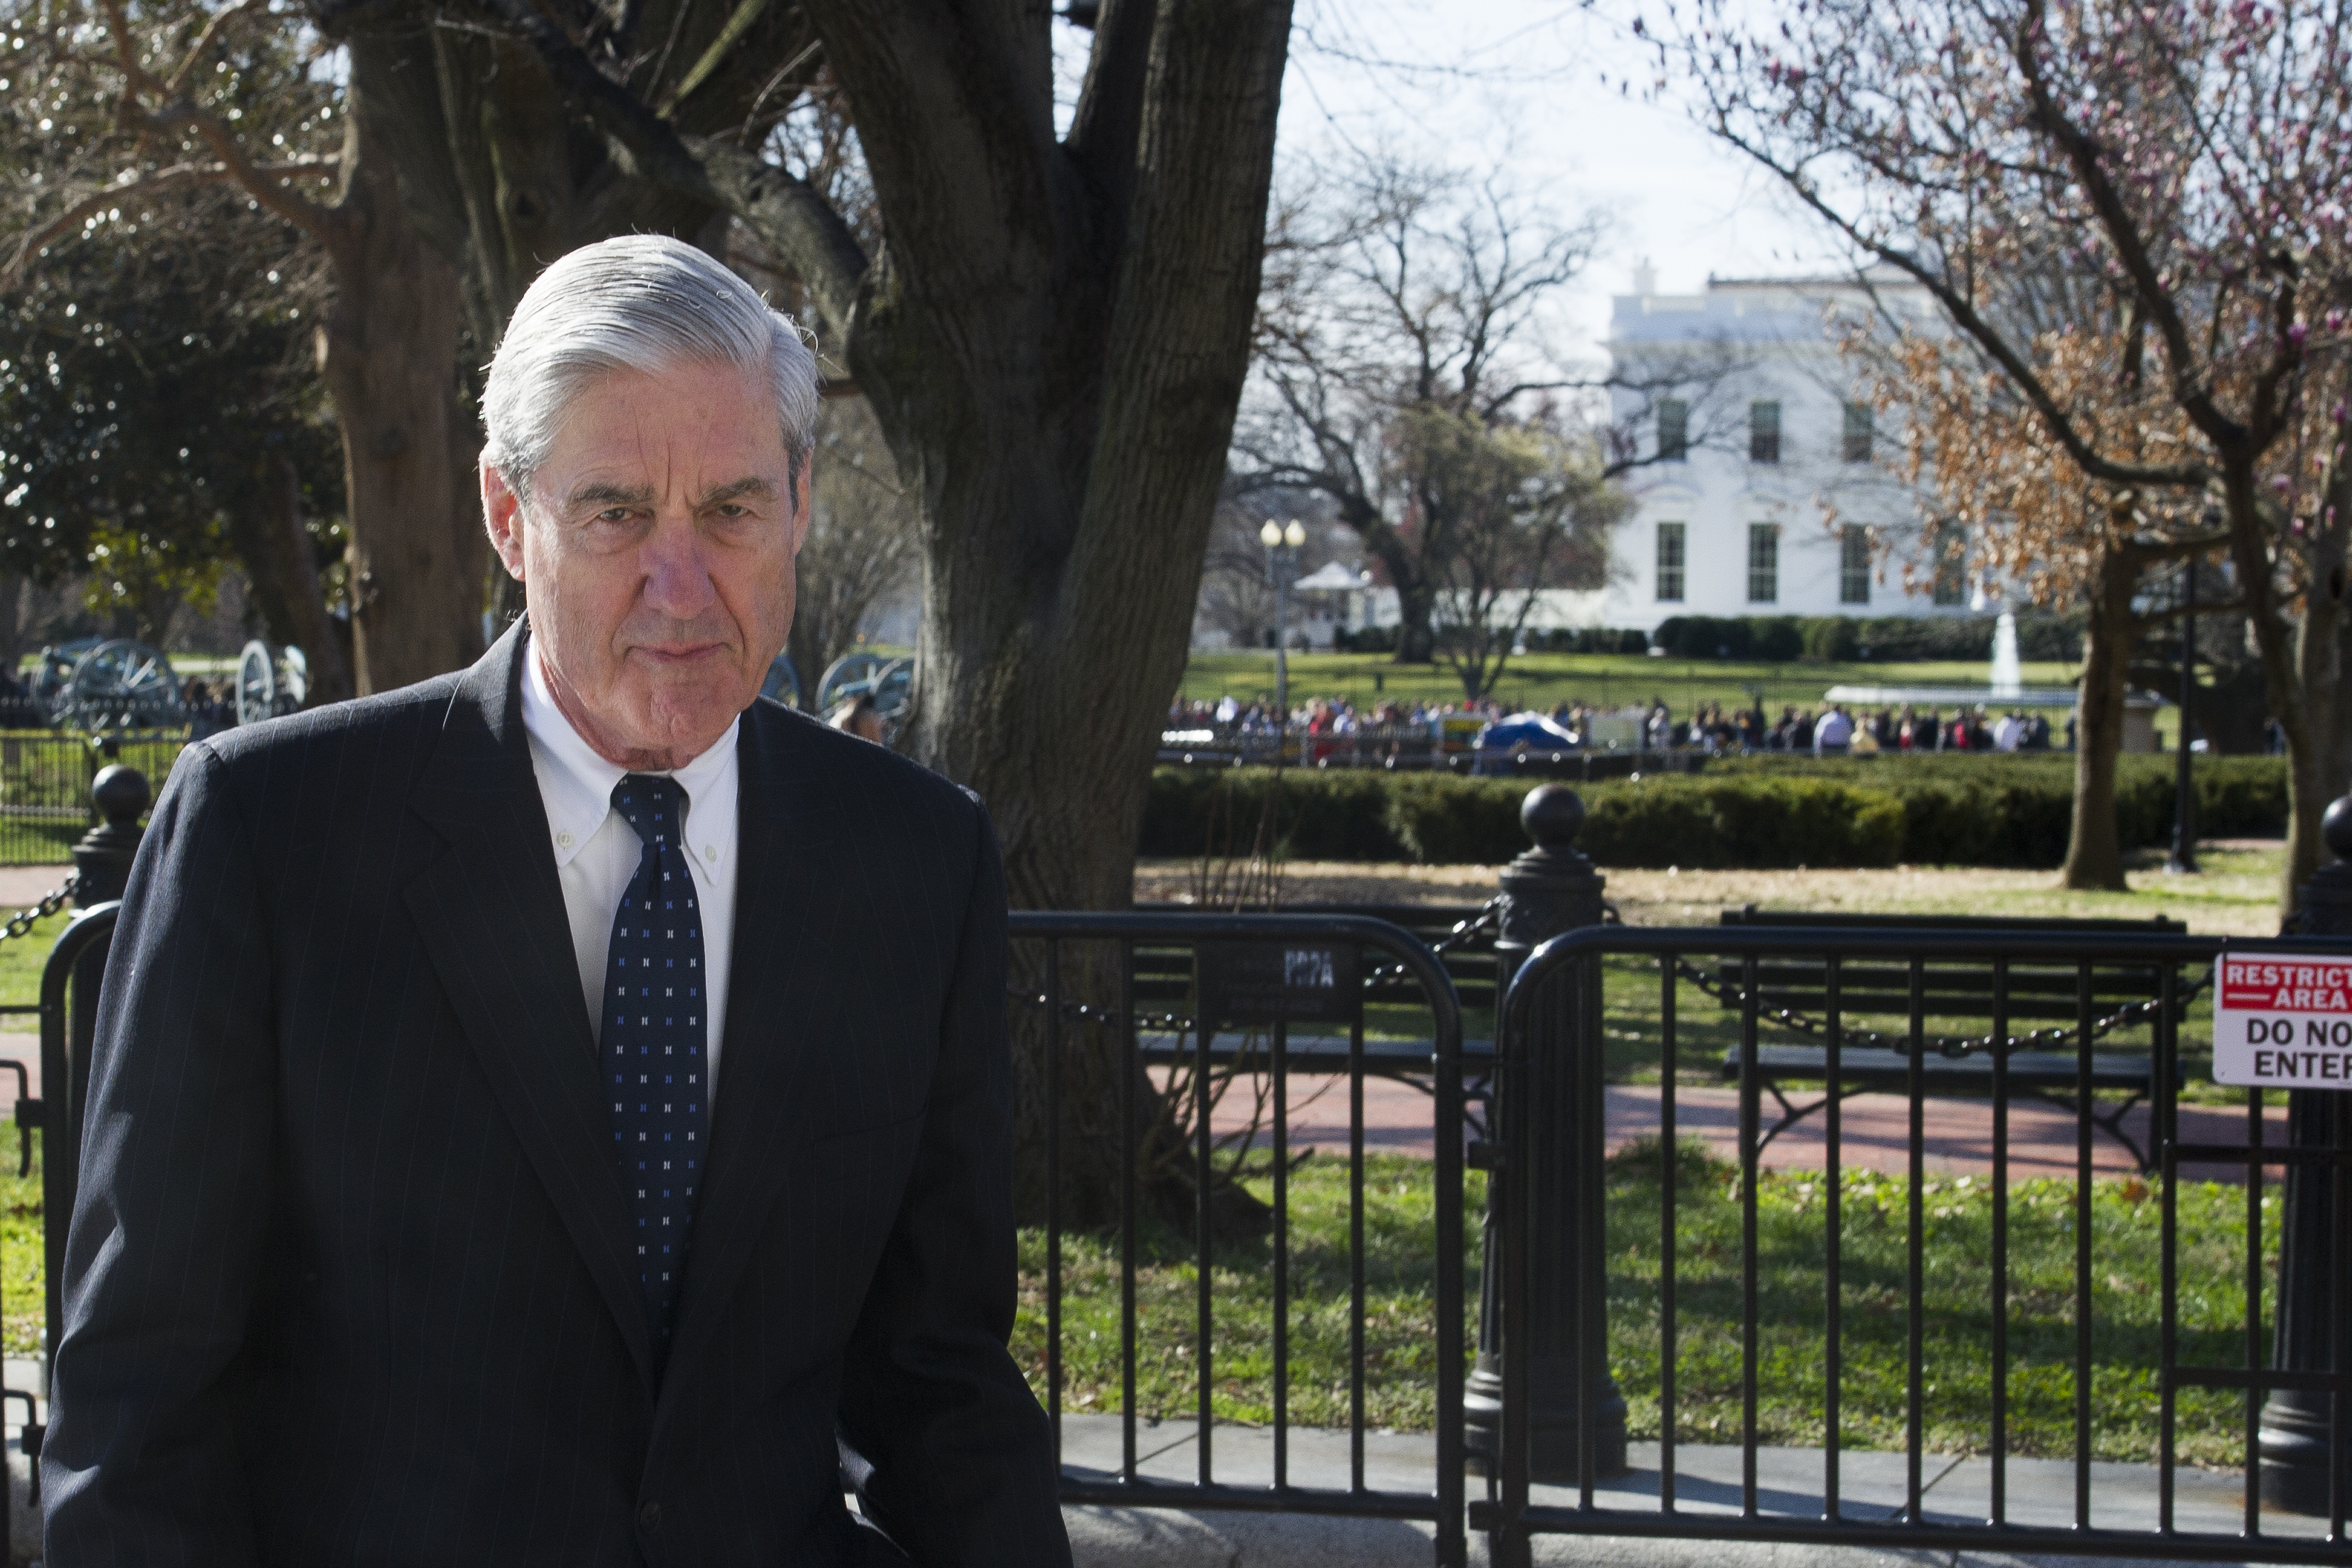 List of trusted journalistic sources shrinks in post-Mueller report wo